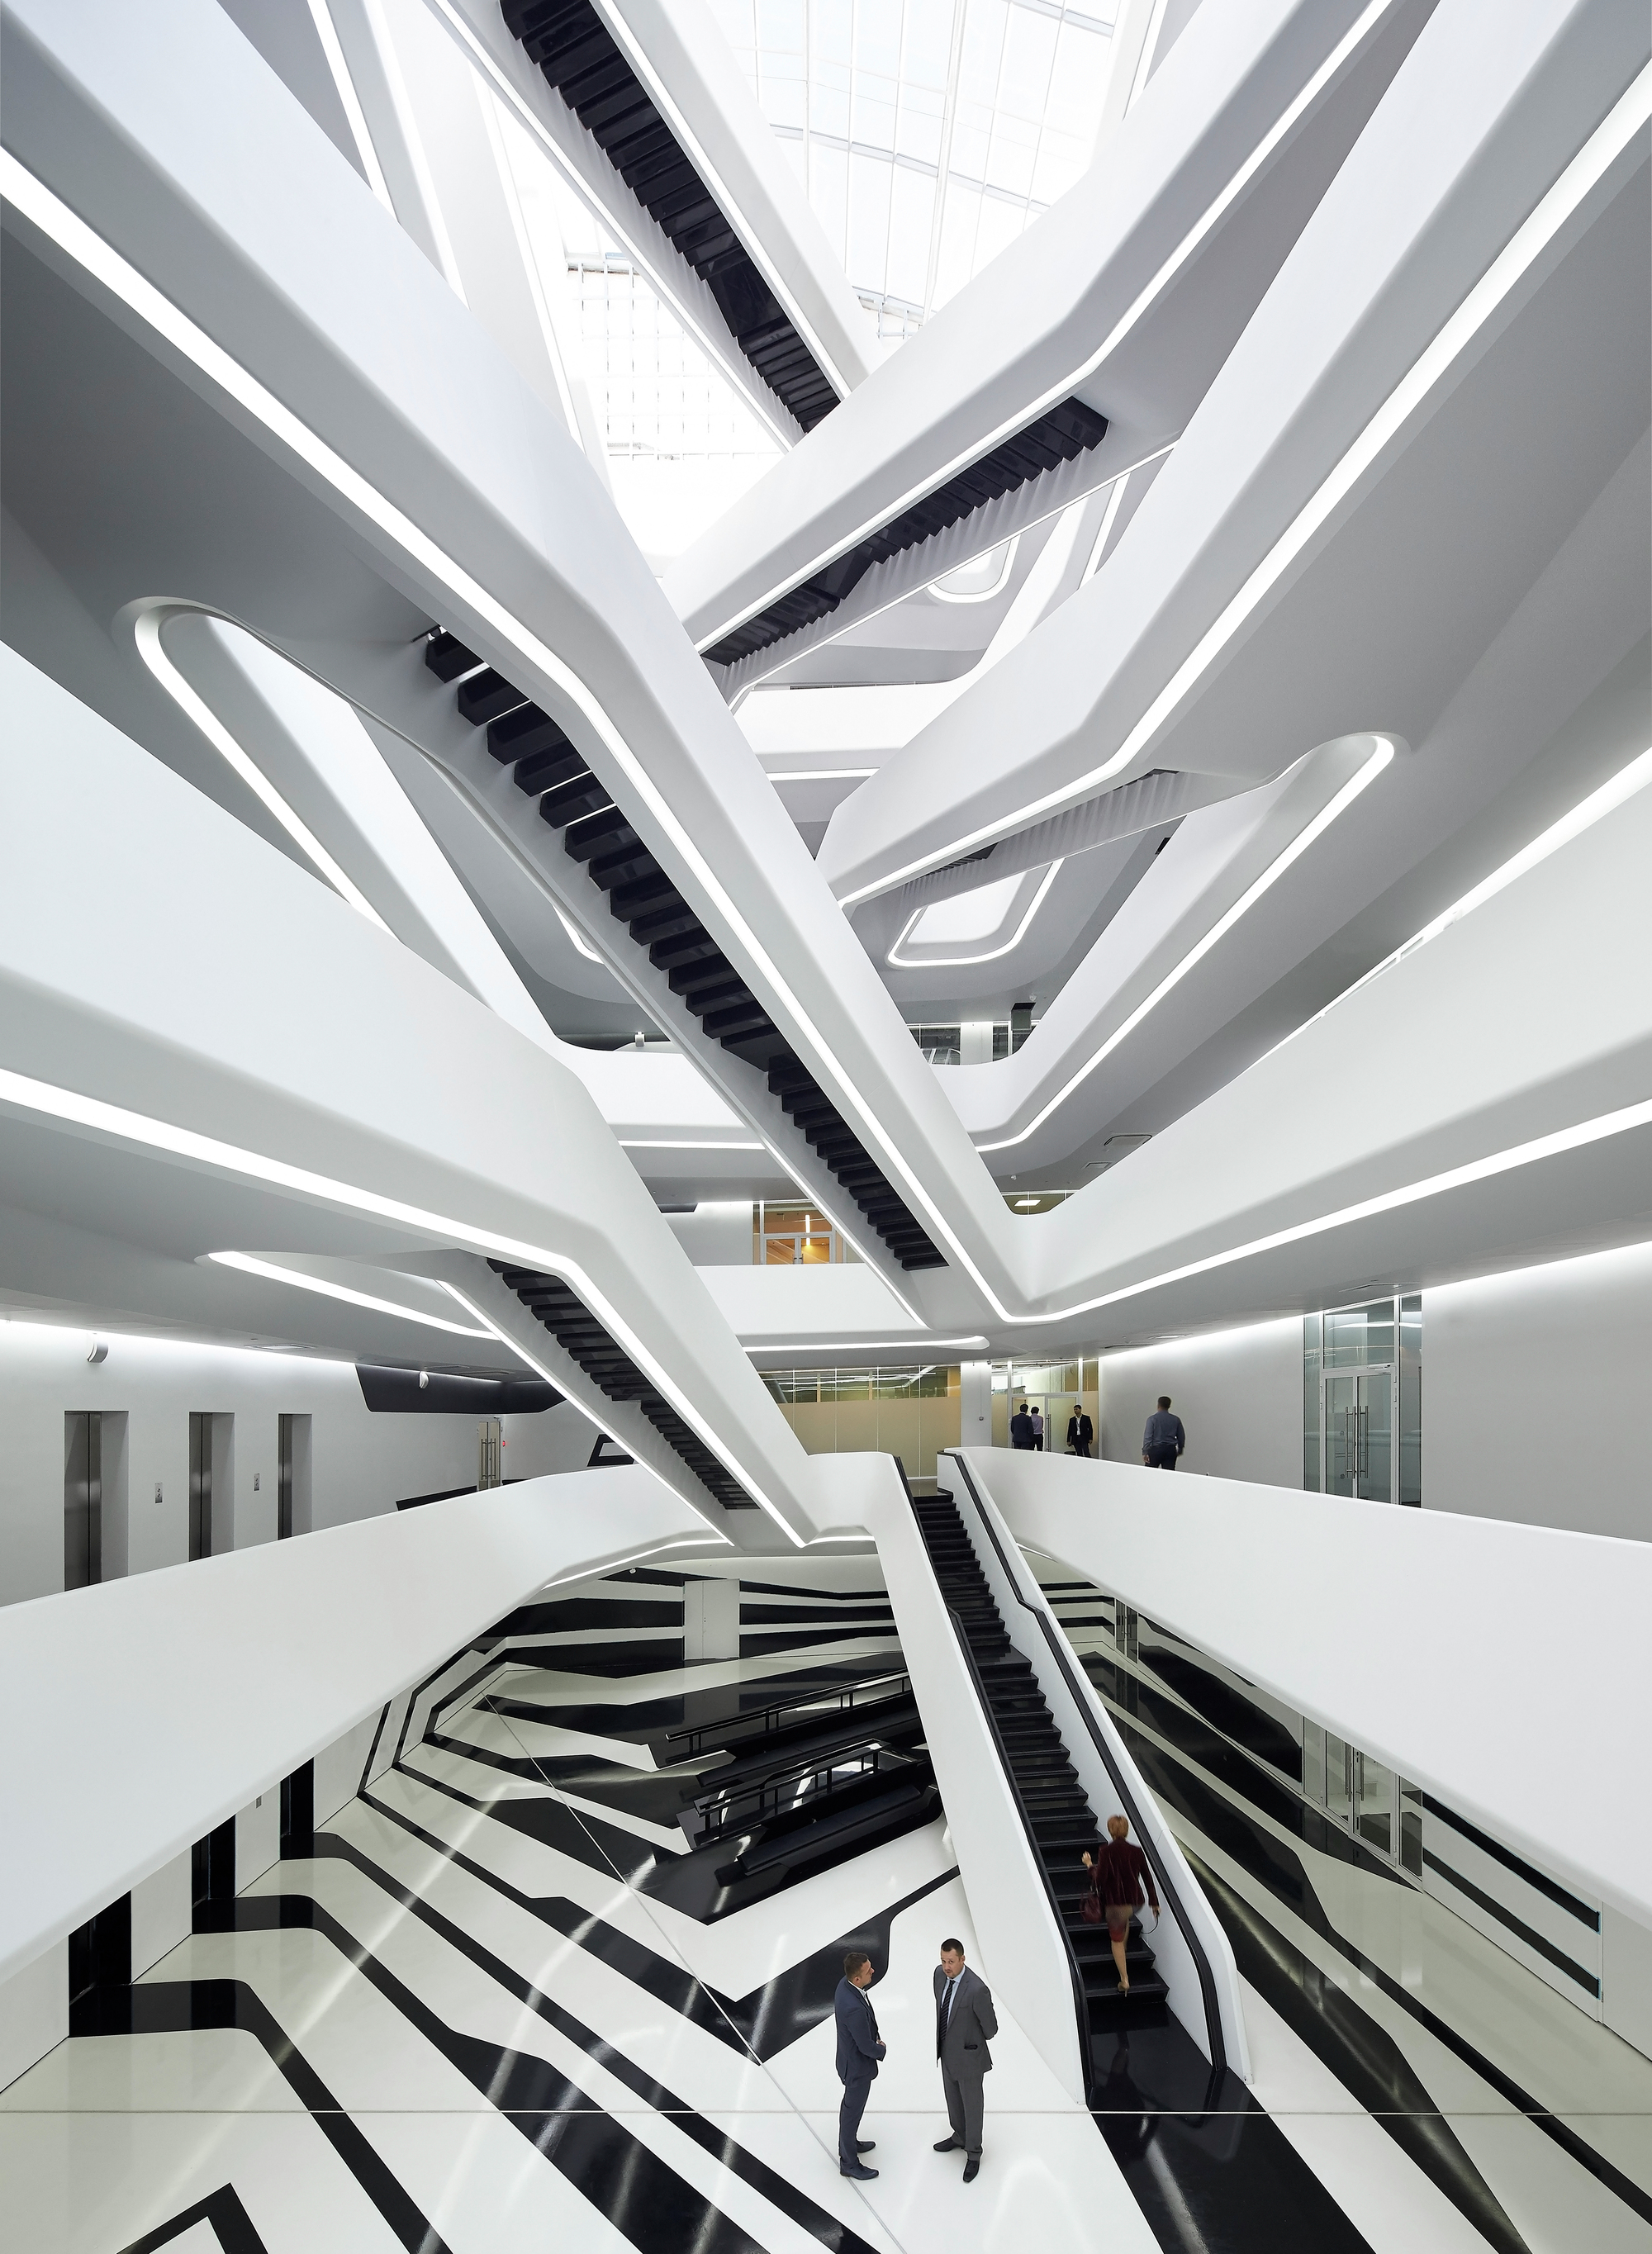 Dominion office building zaha hadid architects archdaily for Office design zaha hadid